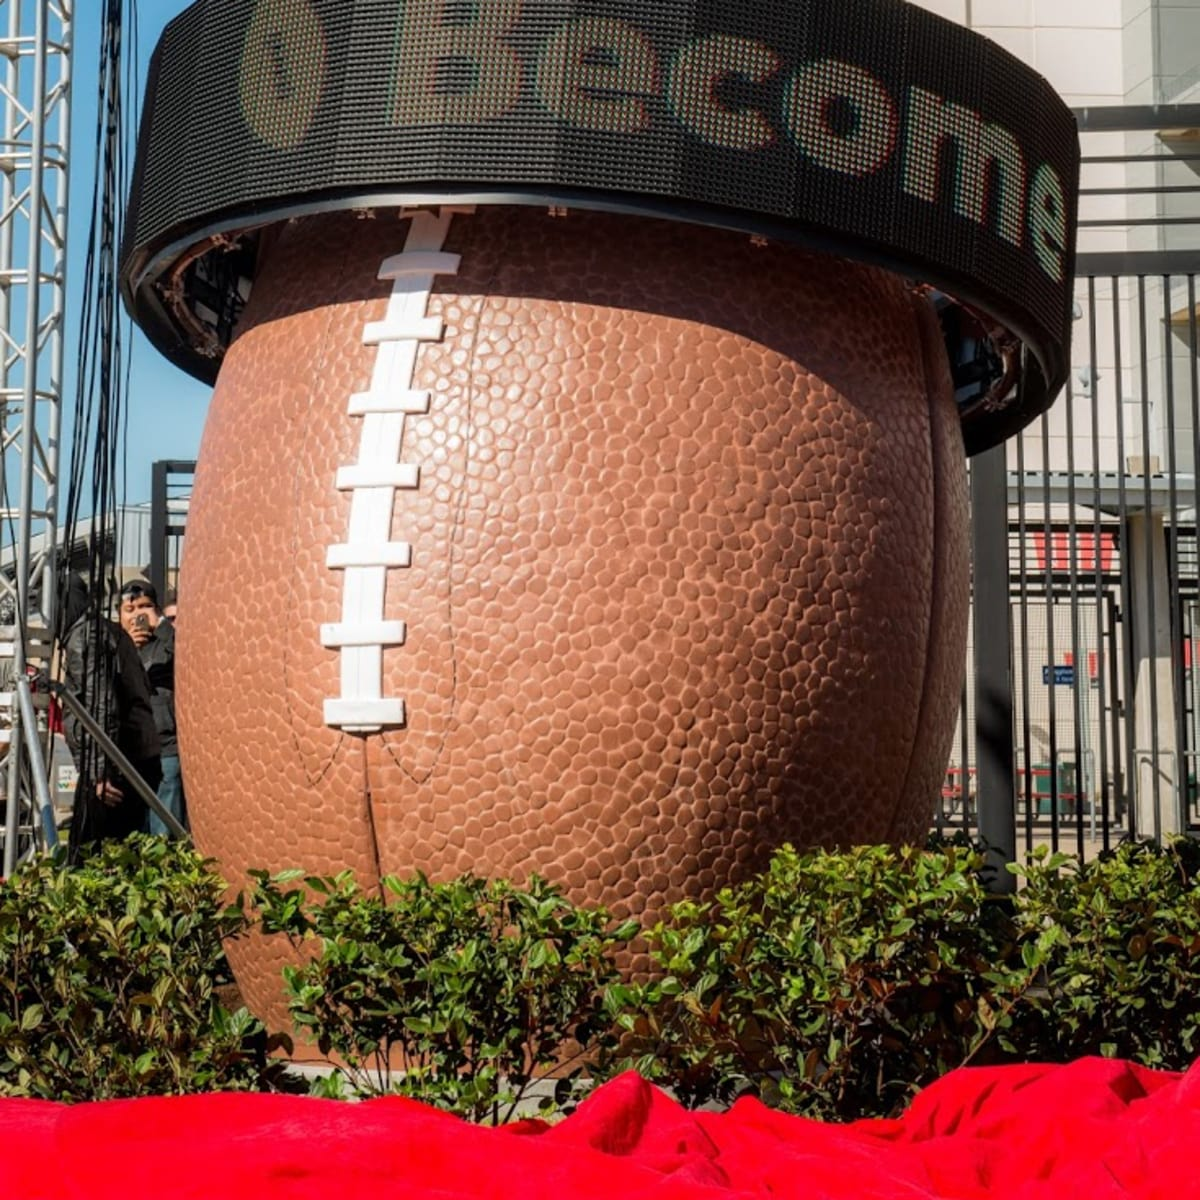 Super Bowl Countdown Clock, Feb. 2016